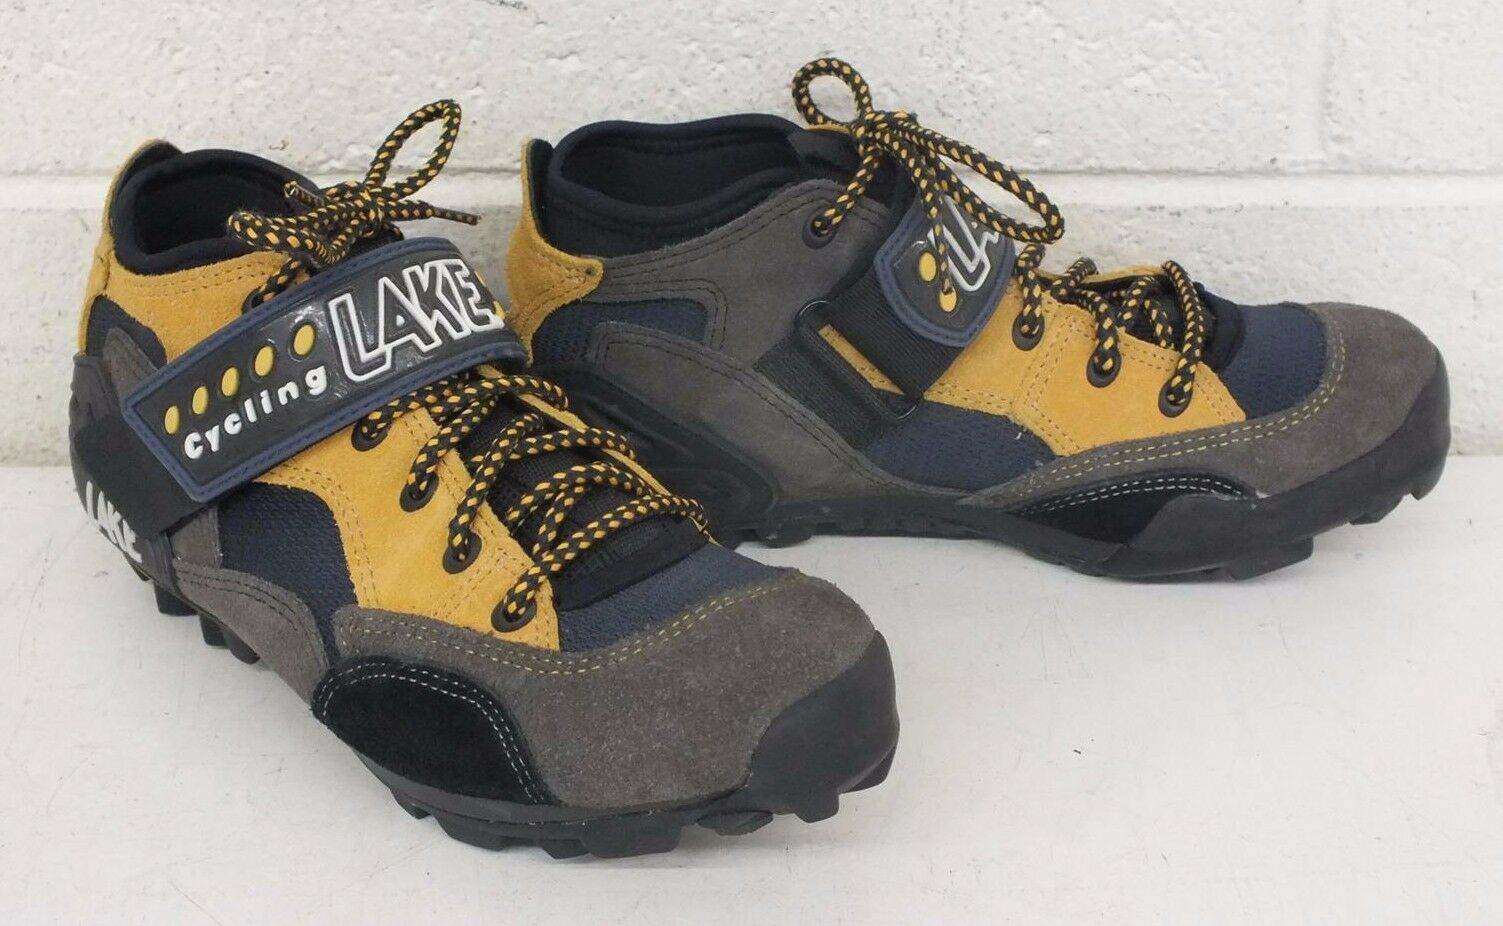 Lake Cycling High-Quality Mountain Bike Cycling shoes US Men's 5 39 EXCELLENT